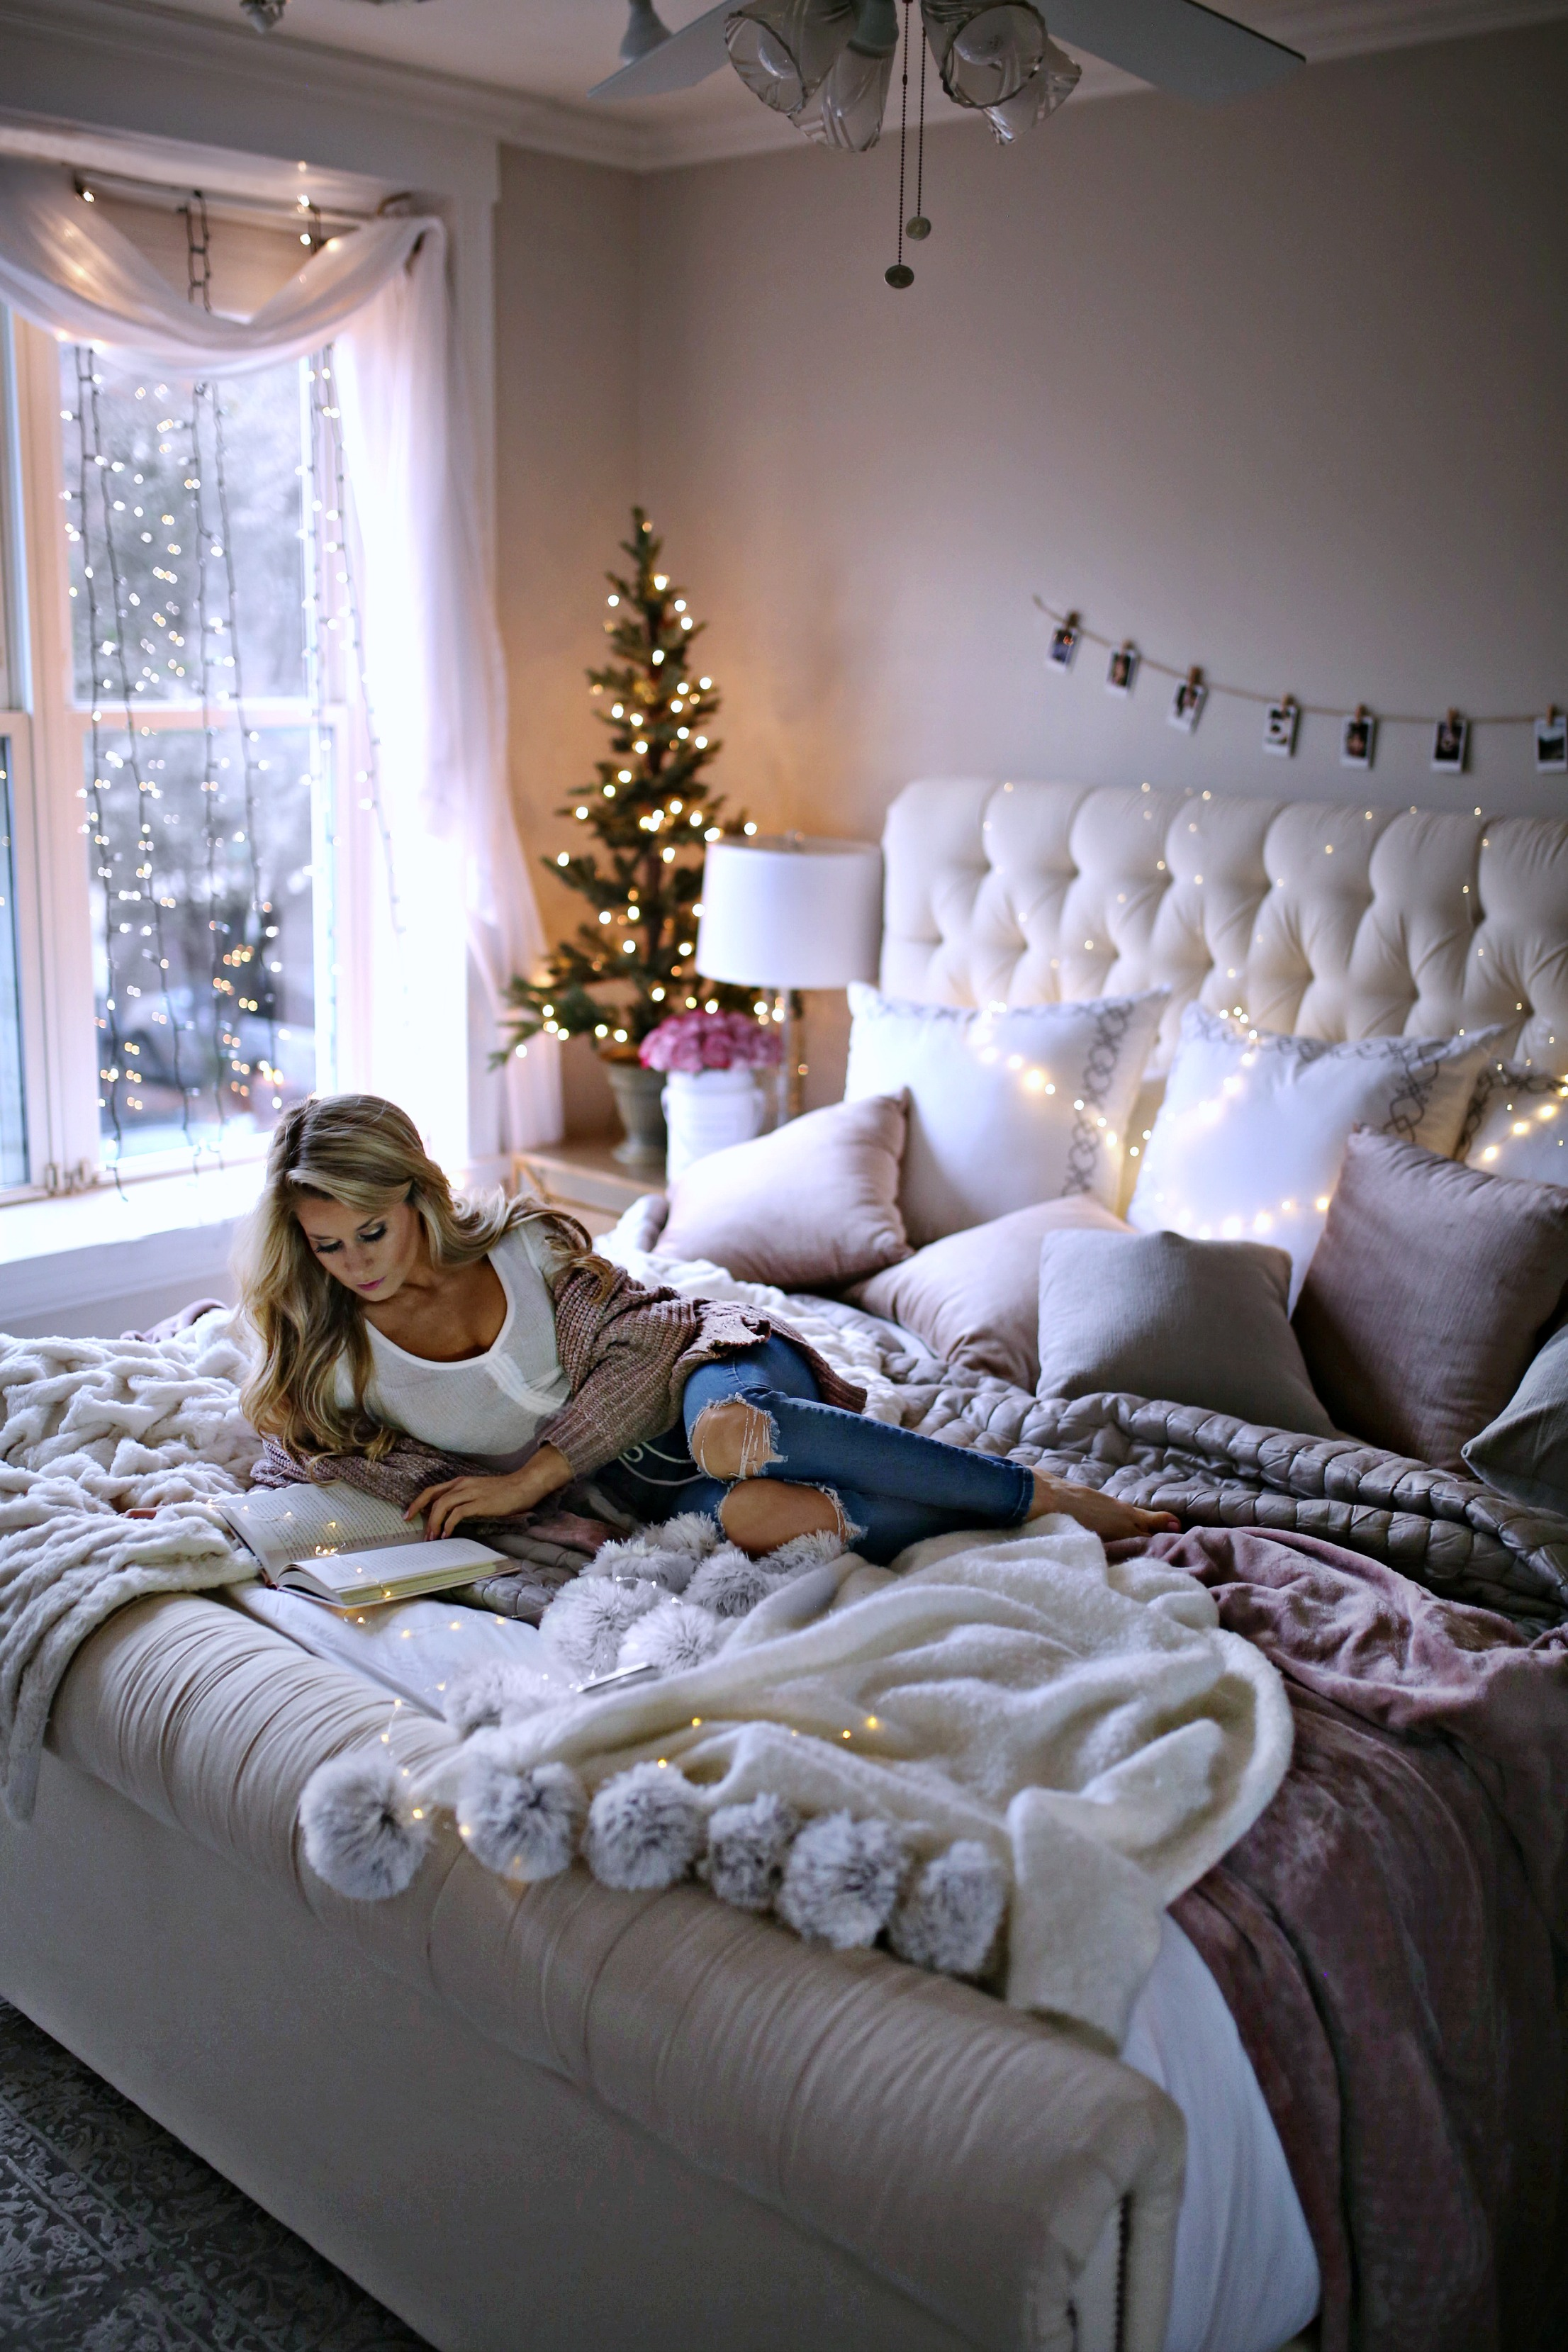 7 Holiday Decor Ideas for Your Bedroom - Welcome to Olivia ... on Room Decor Ideas id=30475